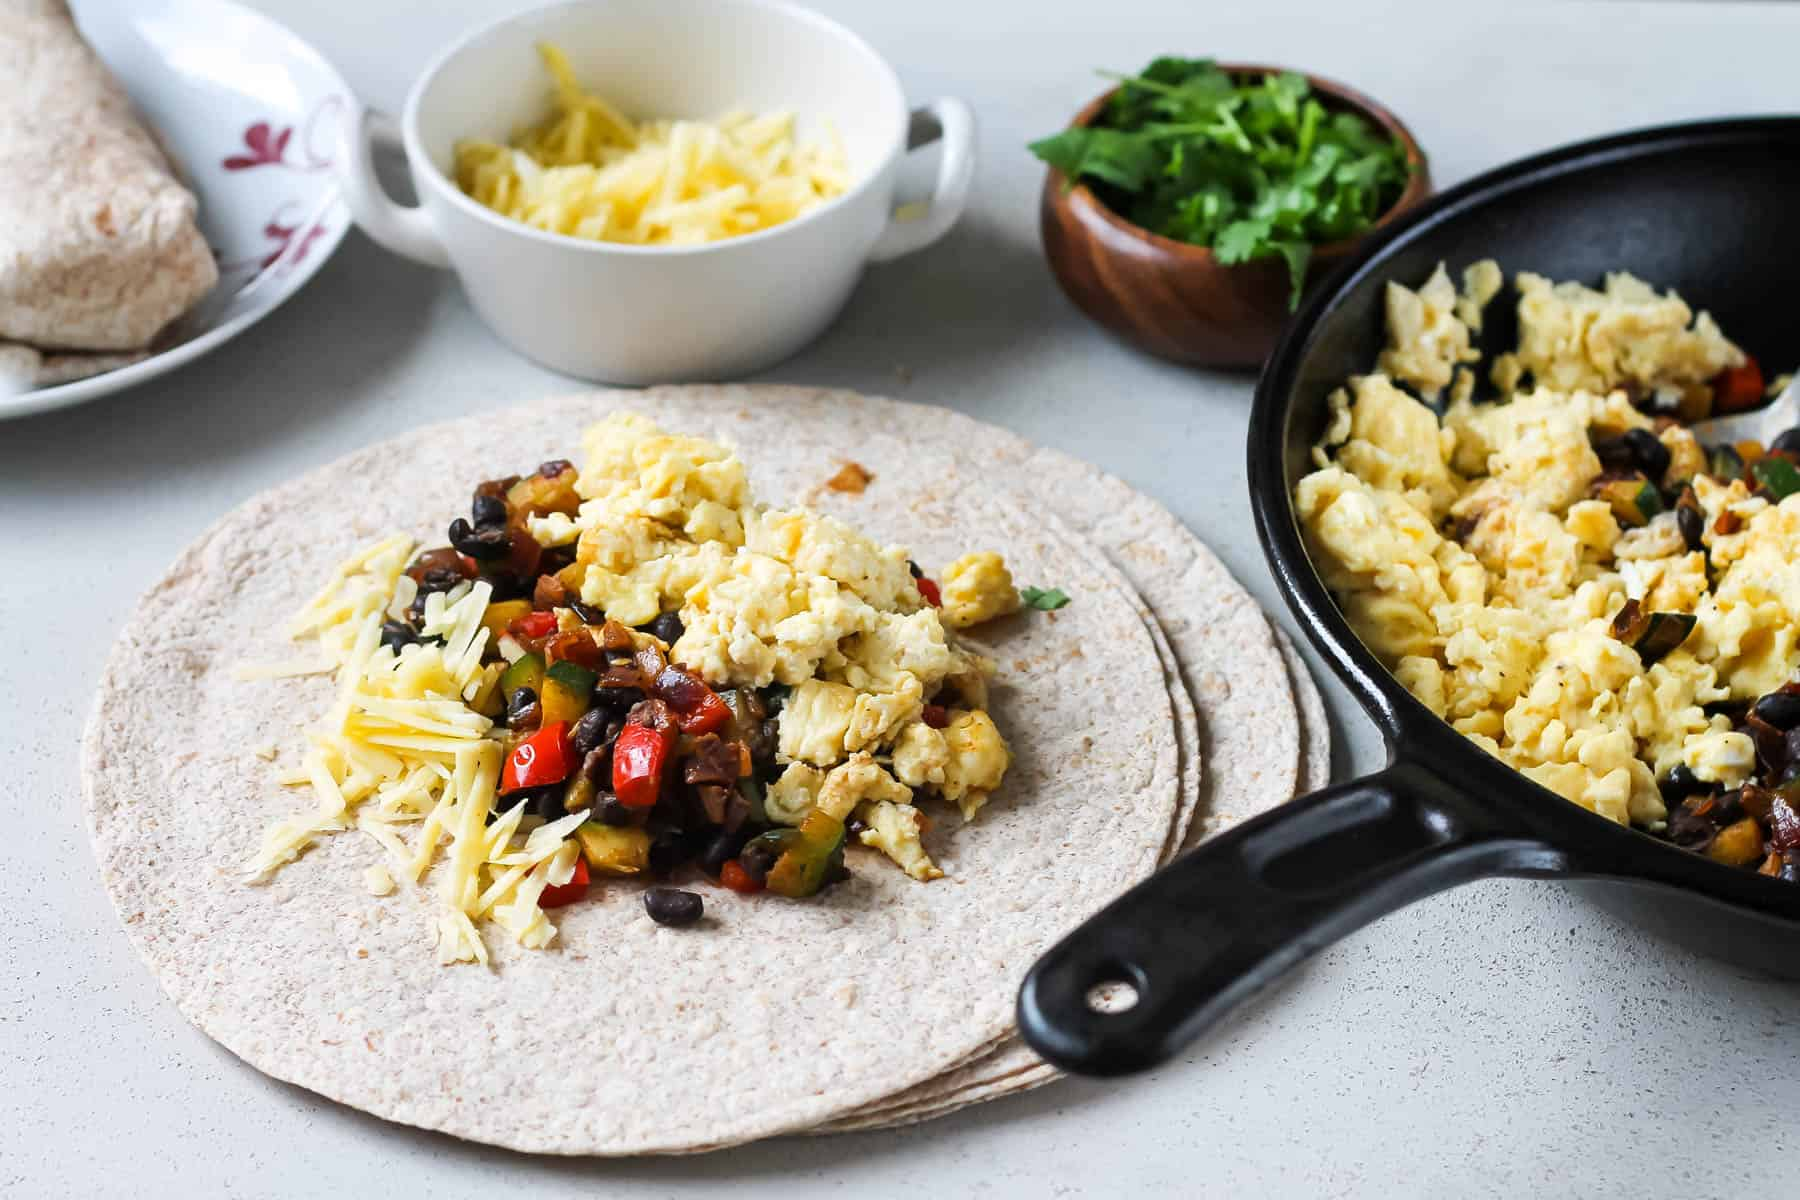 a whole wheat tortilla topped with scrambled eggs, vegetables, and beans